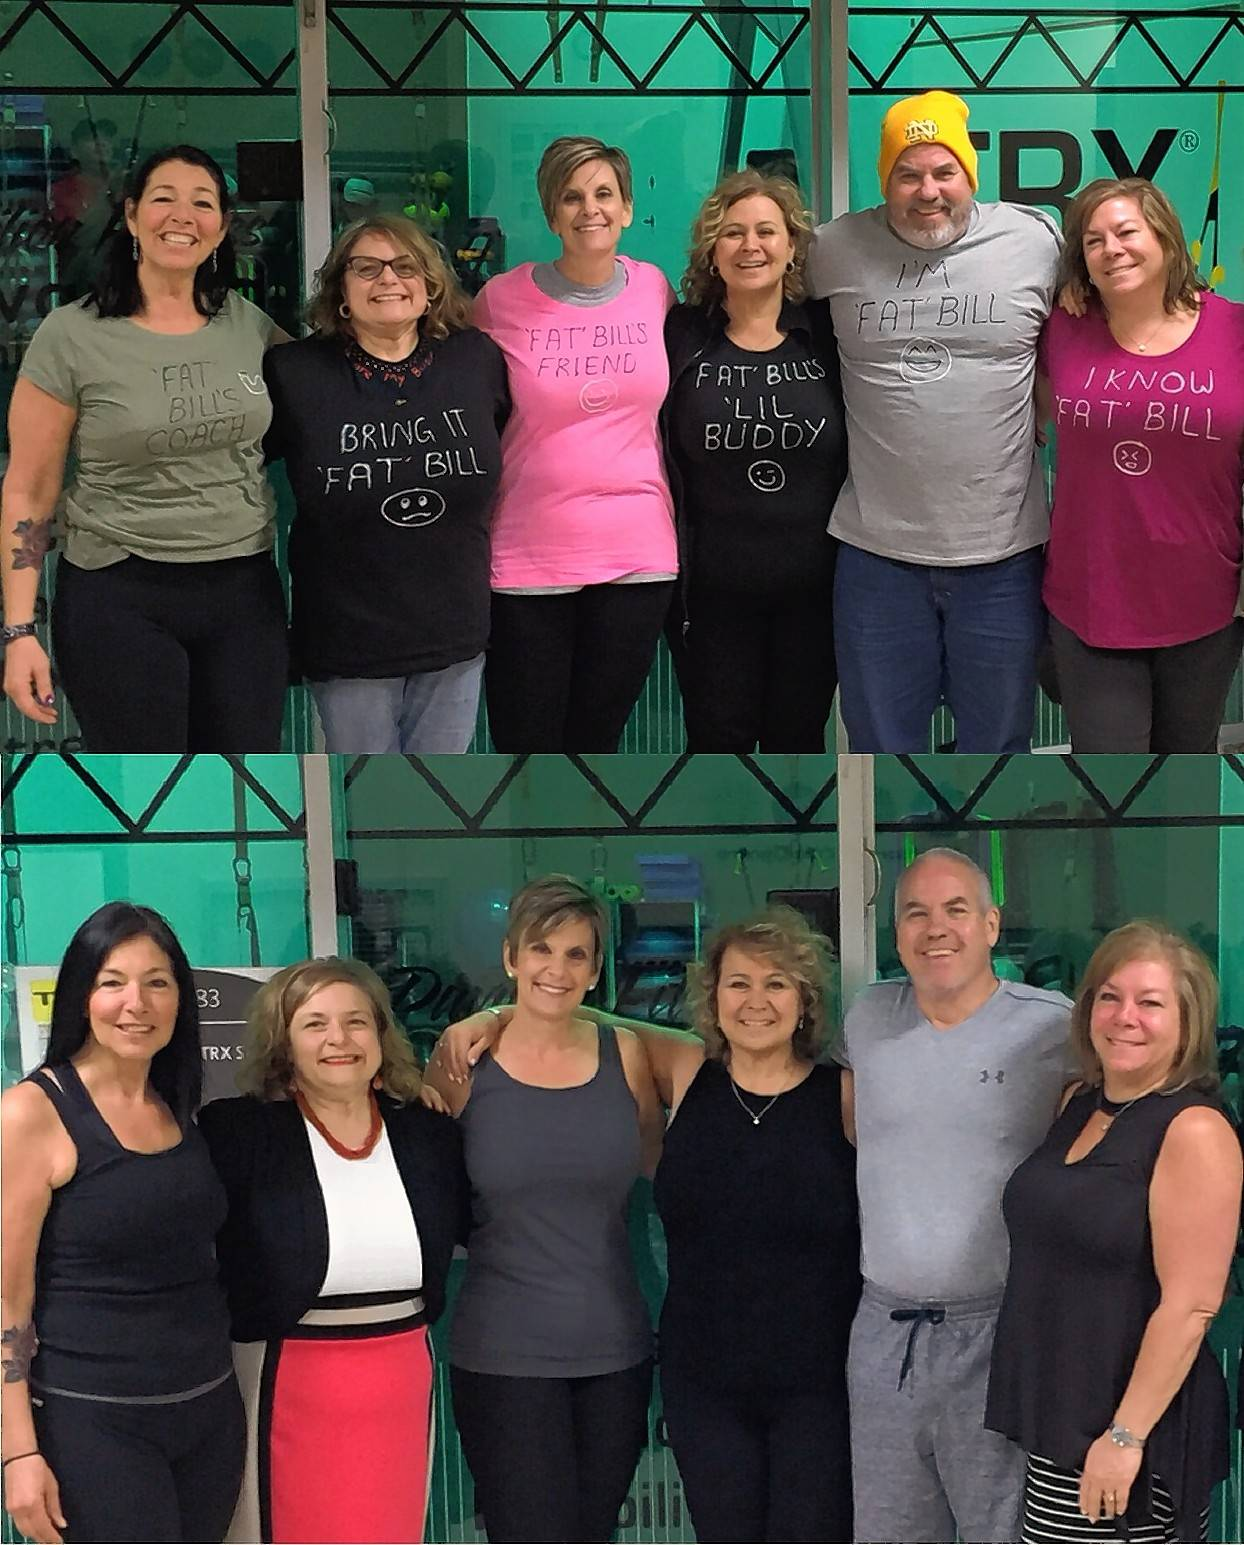 Elk Grove Park District's Elk Strong shows off their before (top) and after pictures. From left to right: Aileen Tischauser, Jennifer LoBosco, Irene Faciano, Leigh Ferstein, Bill O'Malley, and Brenda Piscopo.